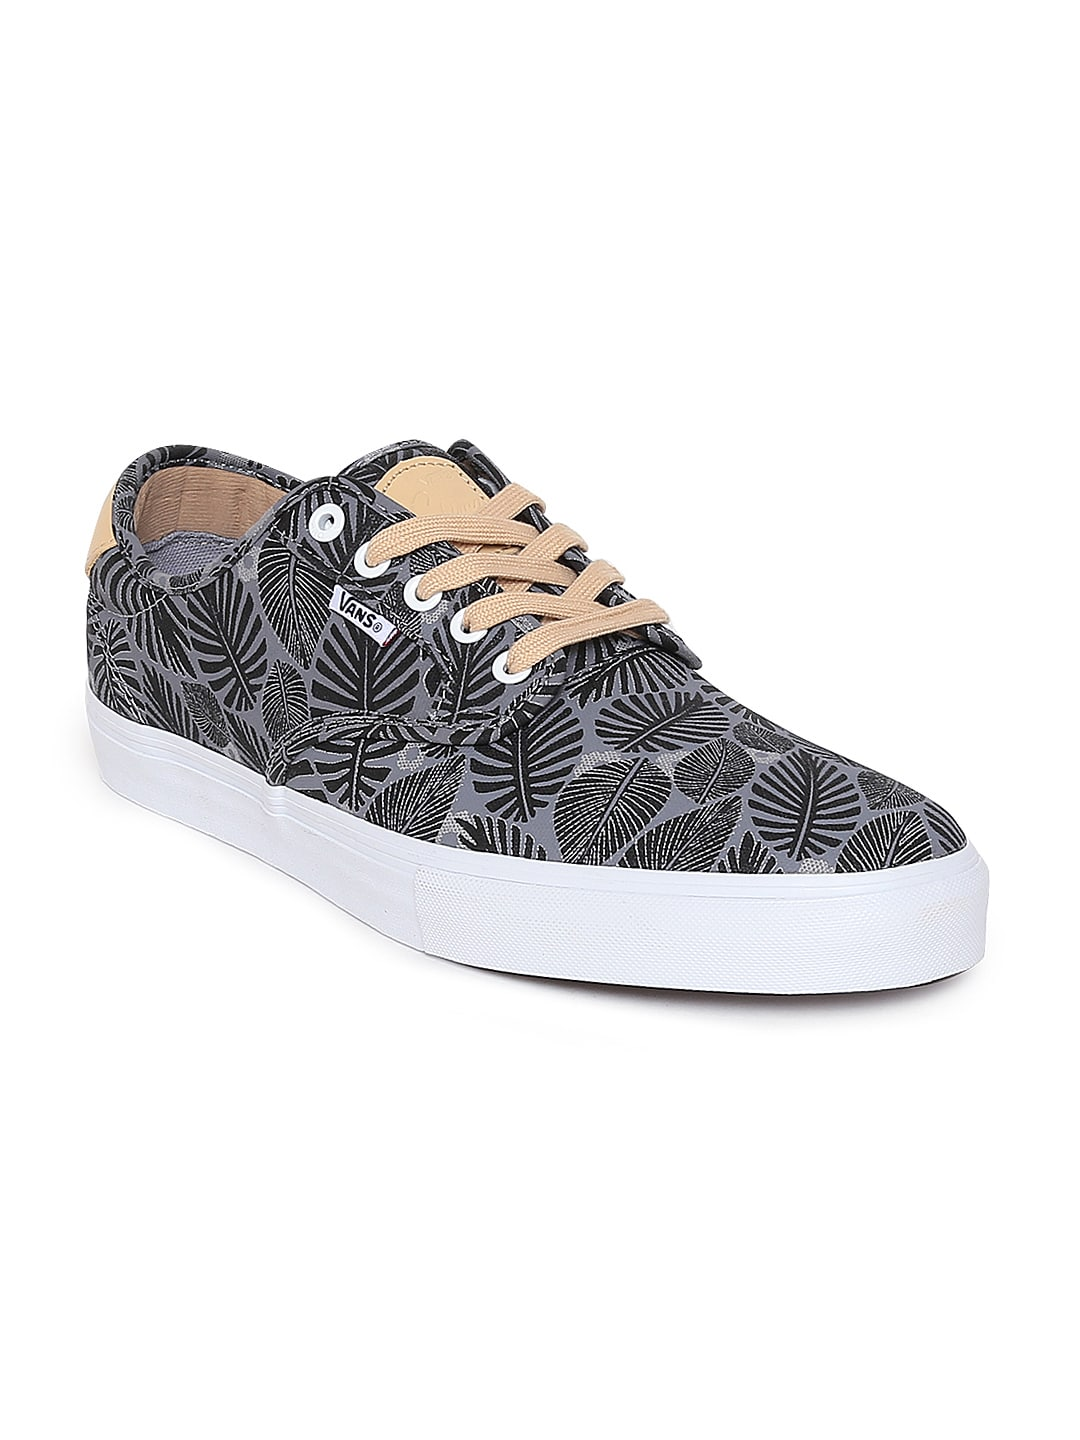 Cheapest Vans Shoes Online India